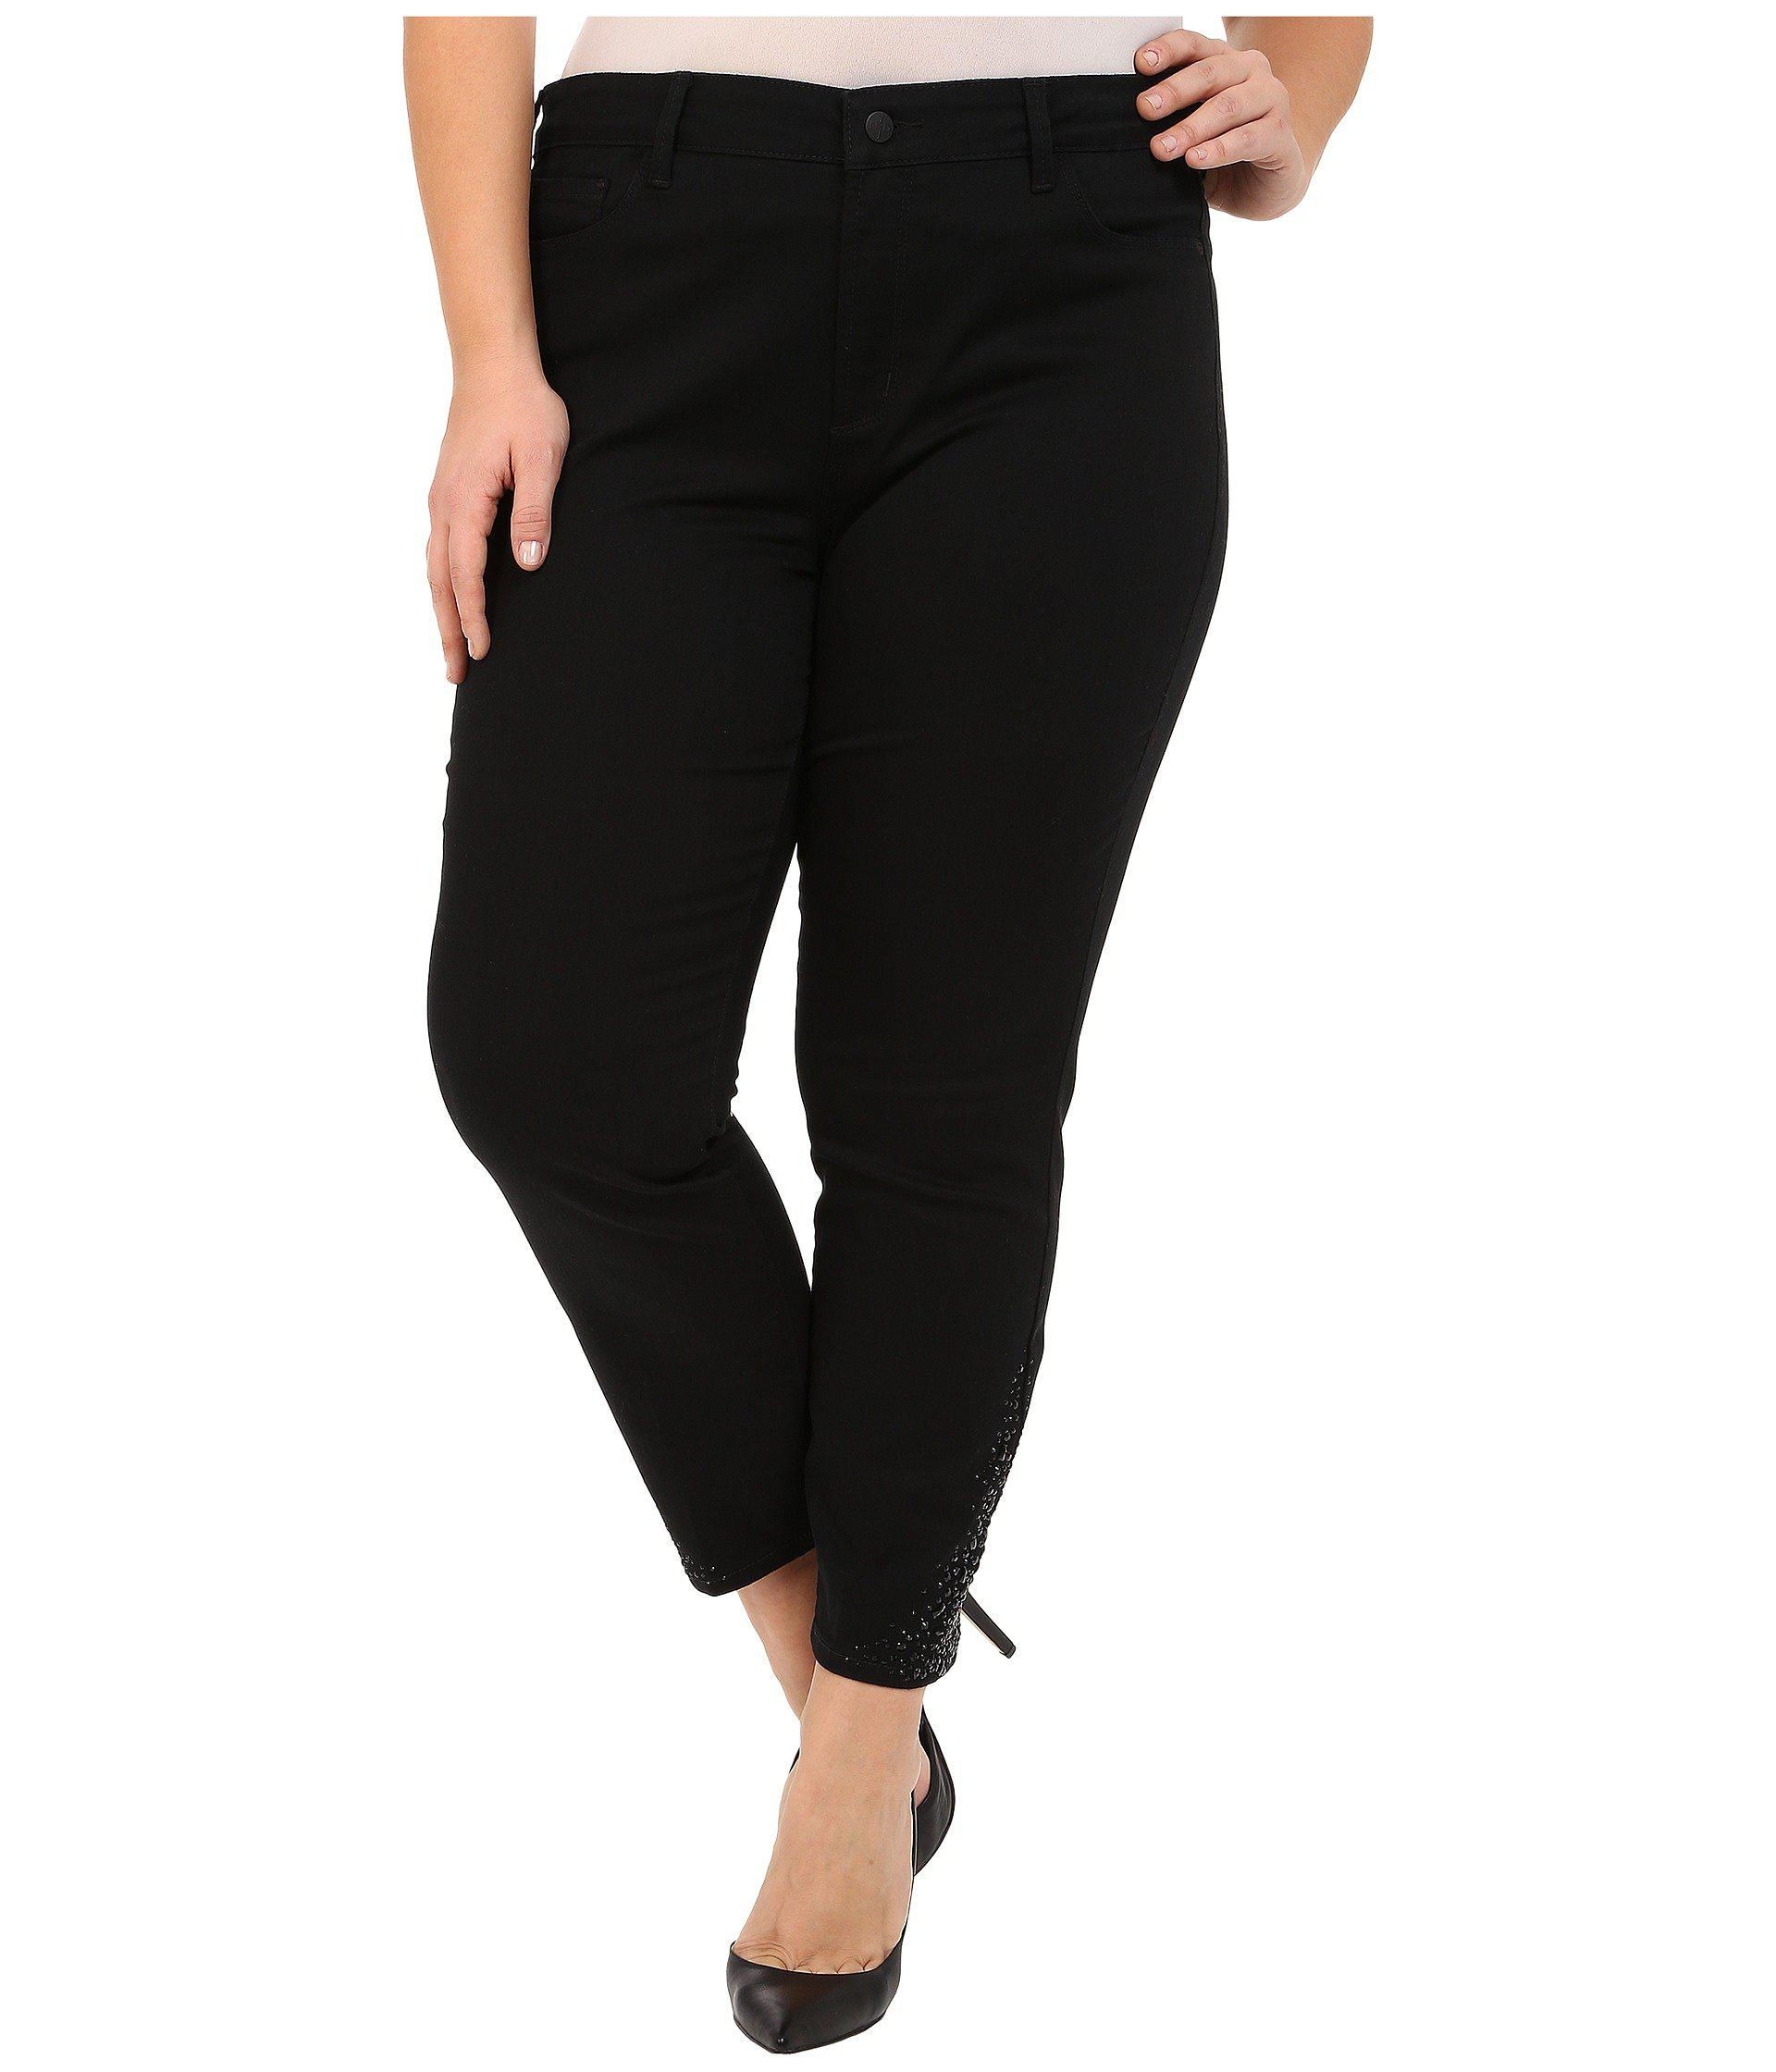 22b85edcaad54 Lyst - Nydj Plus Size Amira Fitted Ankle In Black in Black